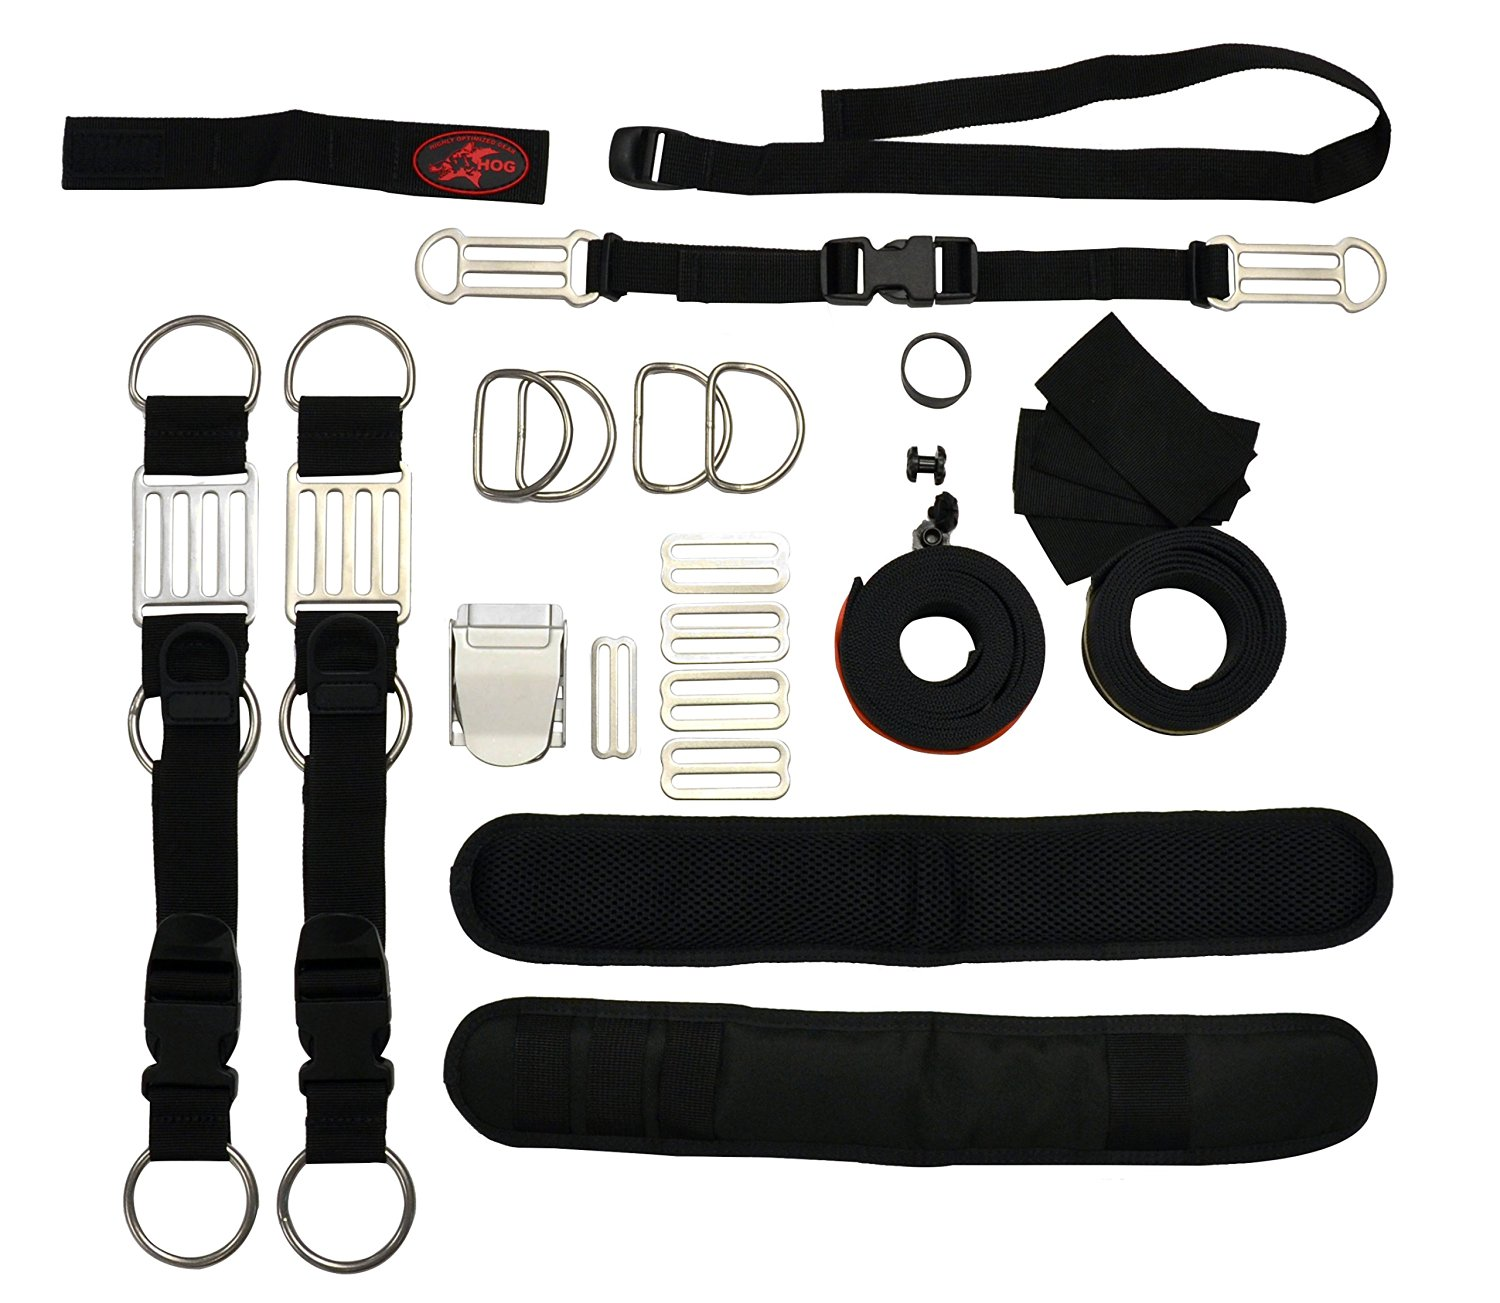 Deluxe Flex Harness System